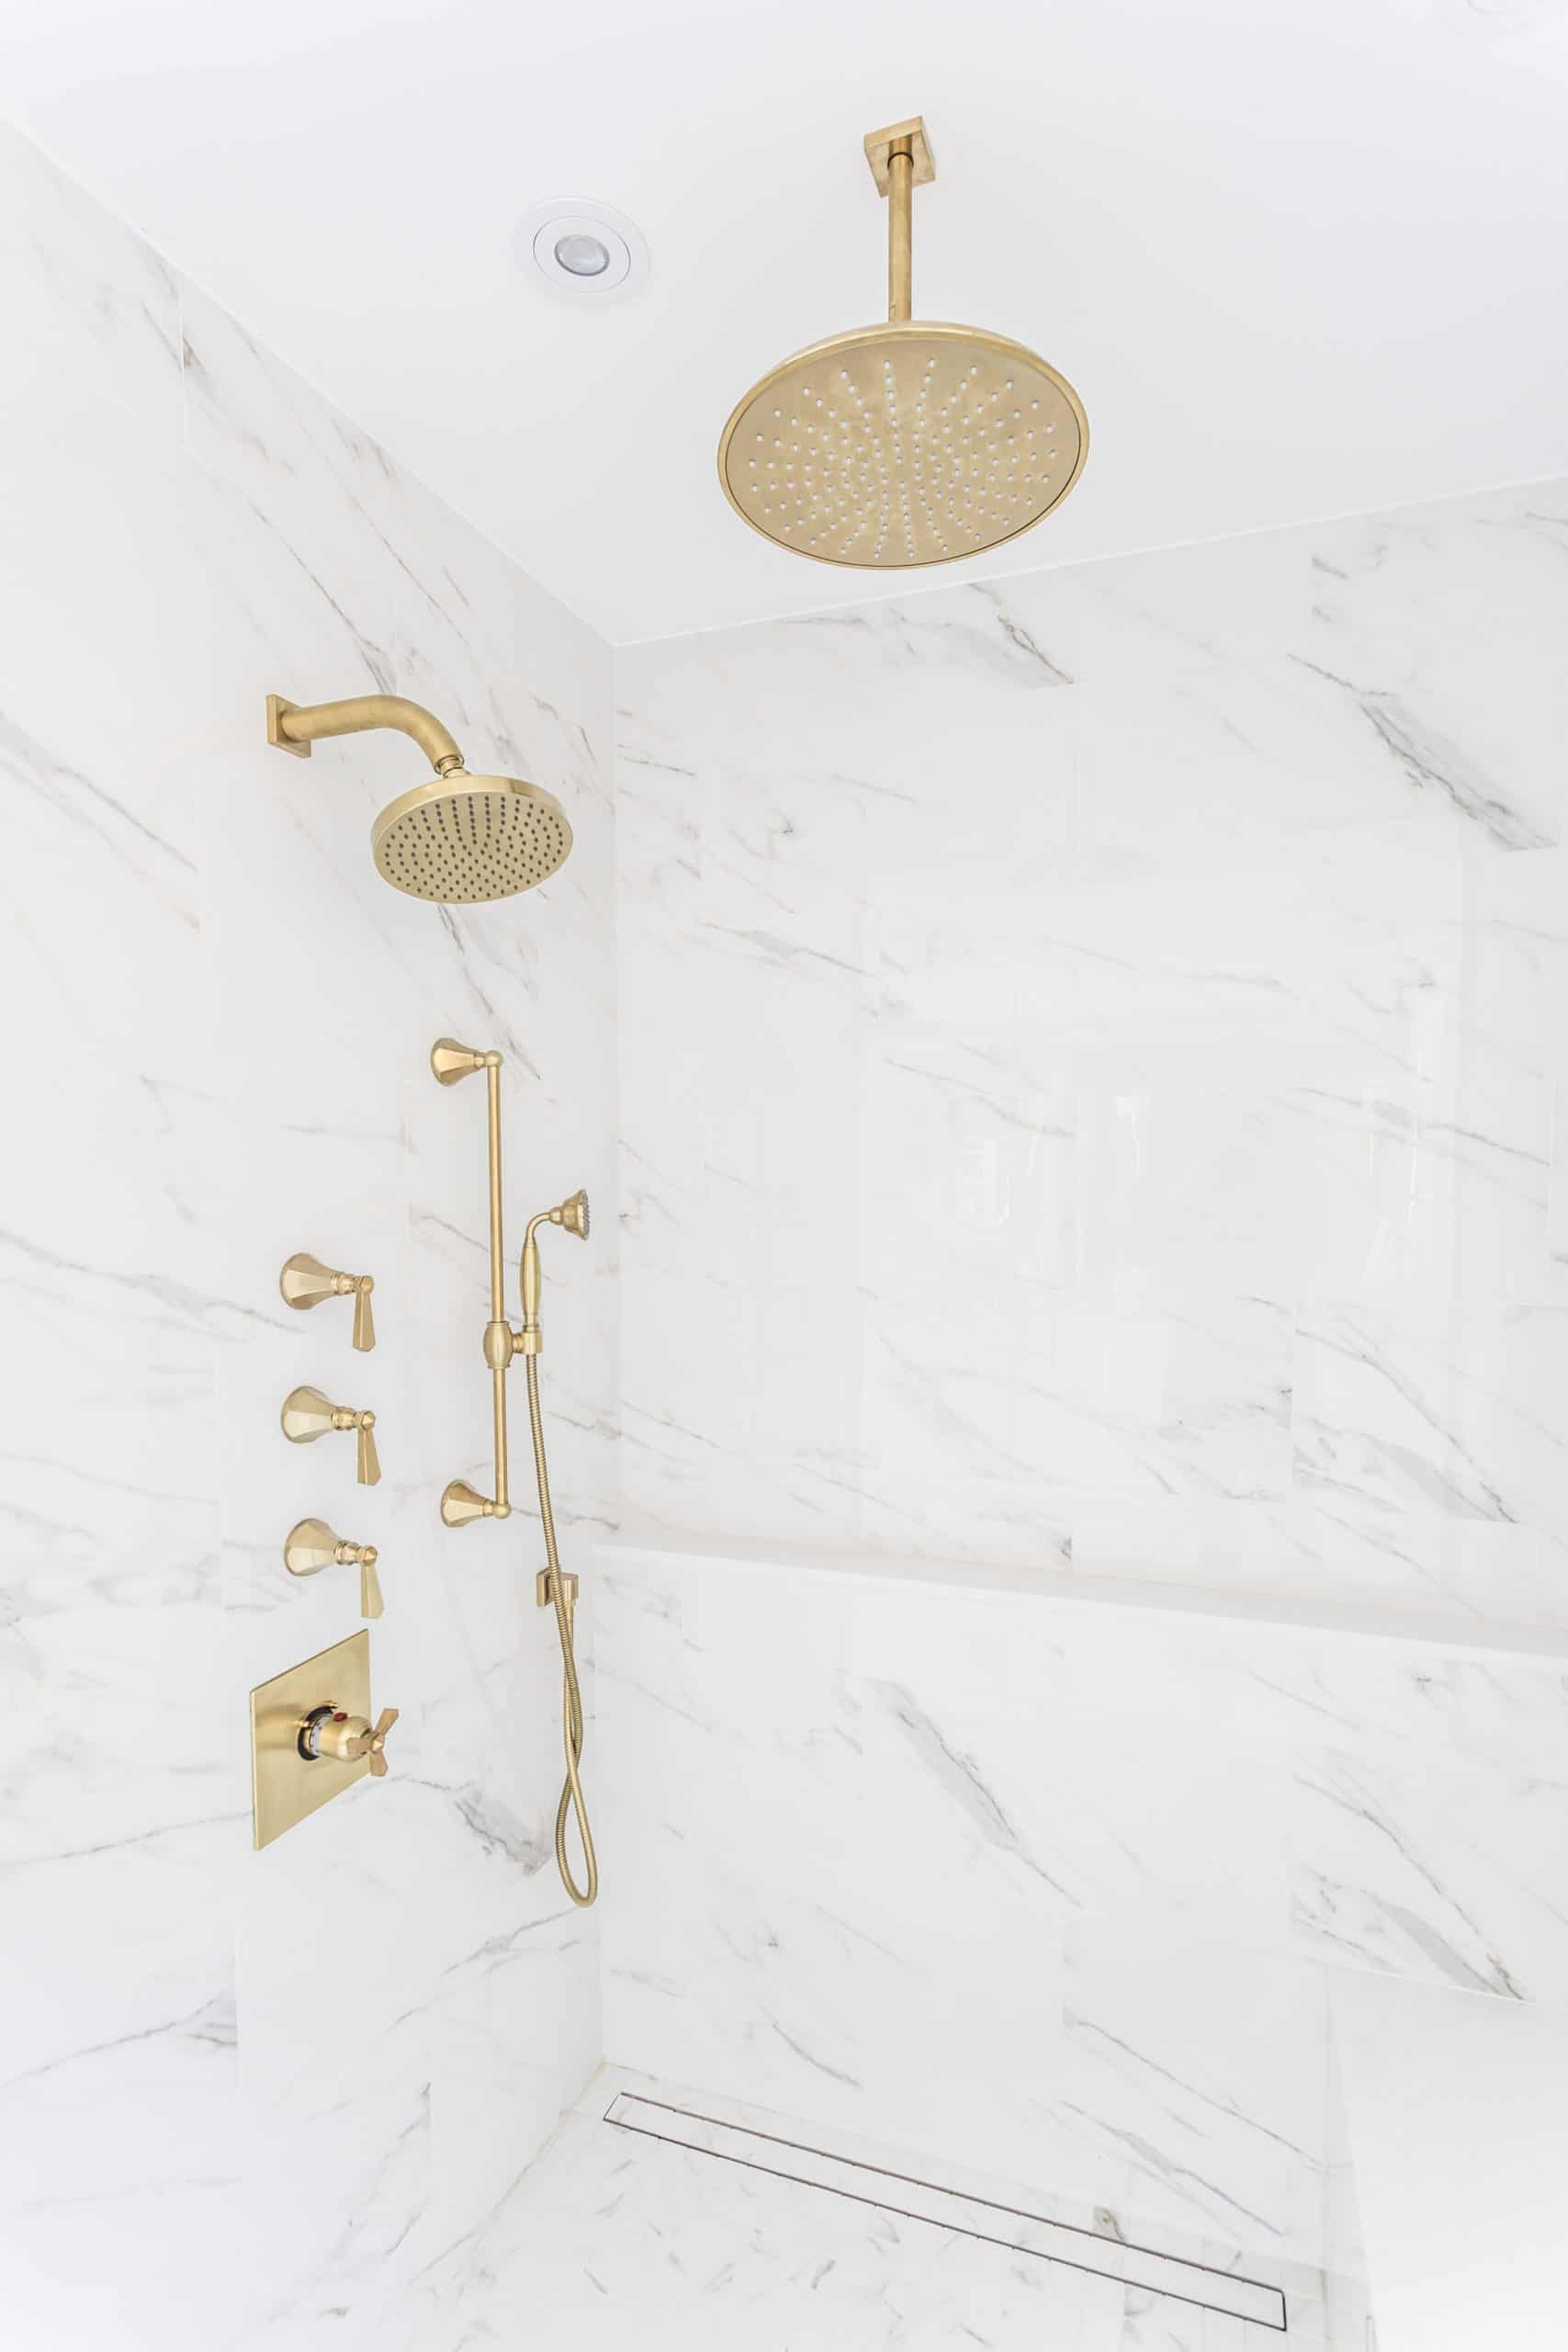 Golden faucet inside the shower covered in marble